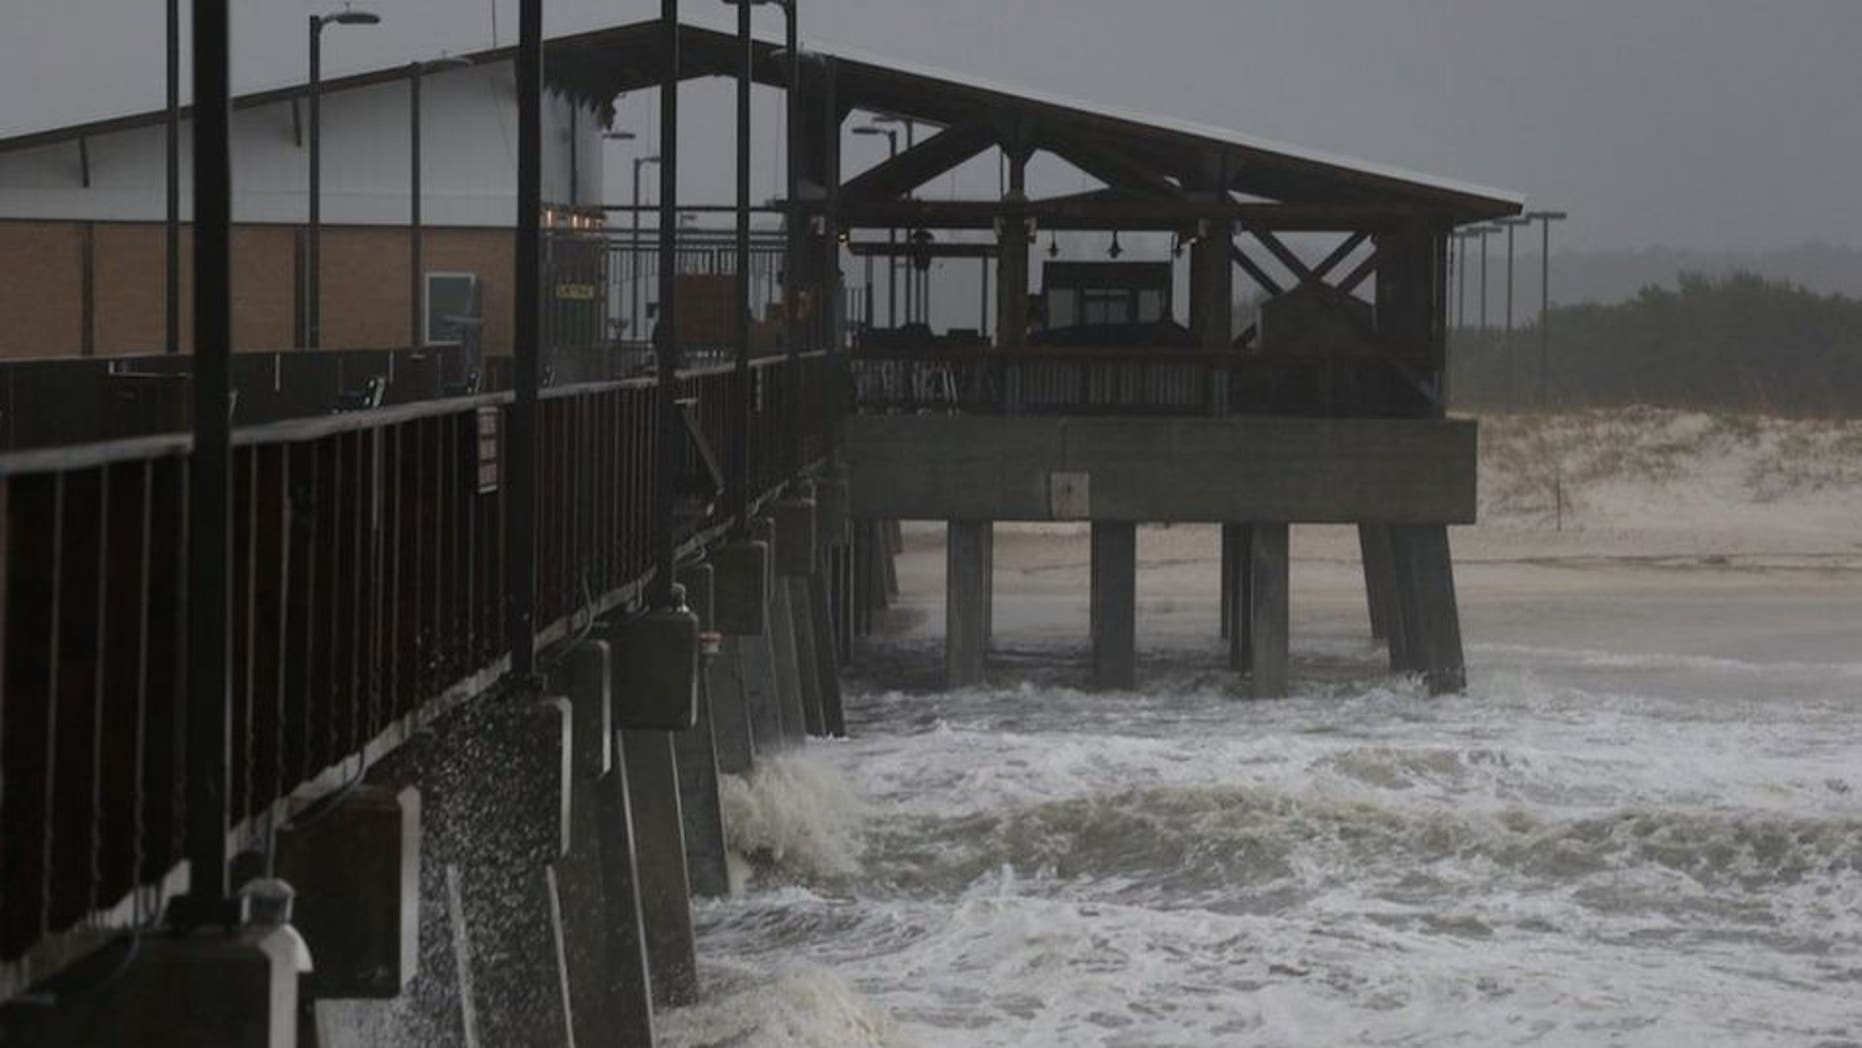 The remnants of Hurricane Patricia striking Gulf Shores, Alabama Monday. (Brian Kelly/Mobile Press-Register via AP)